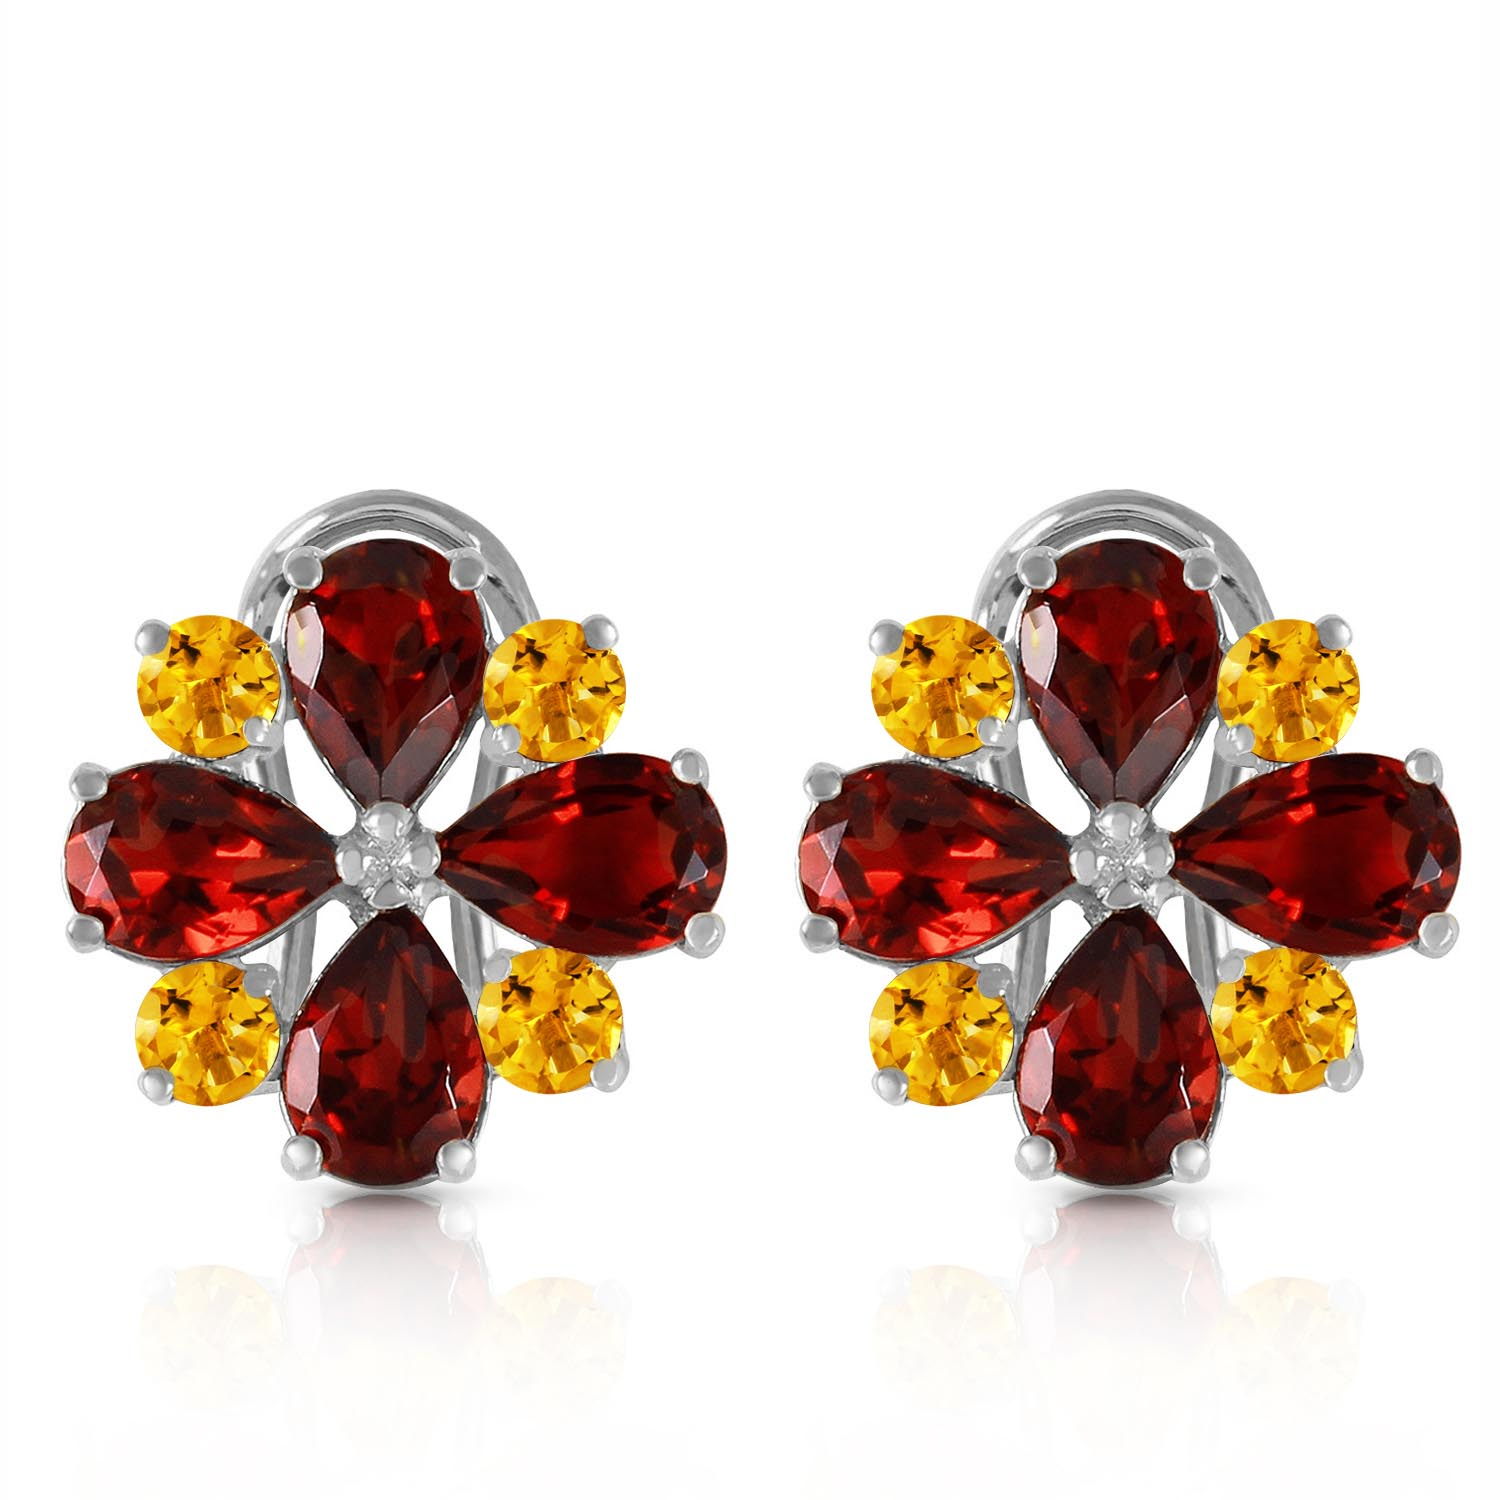 Garnet and Citrine Sunflower Stud French Clip Earrings 4.85ctw in 9ct White Gold